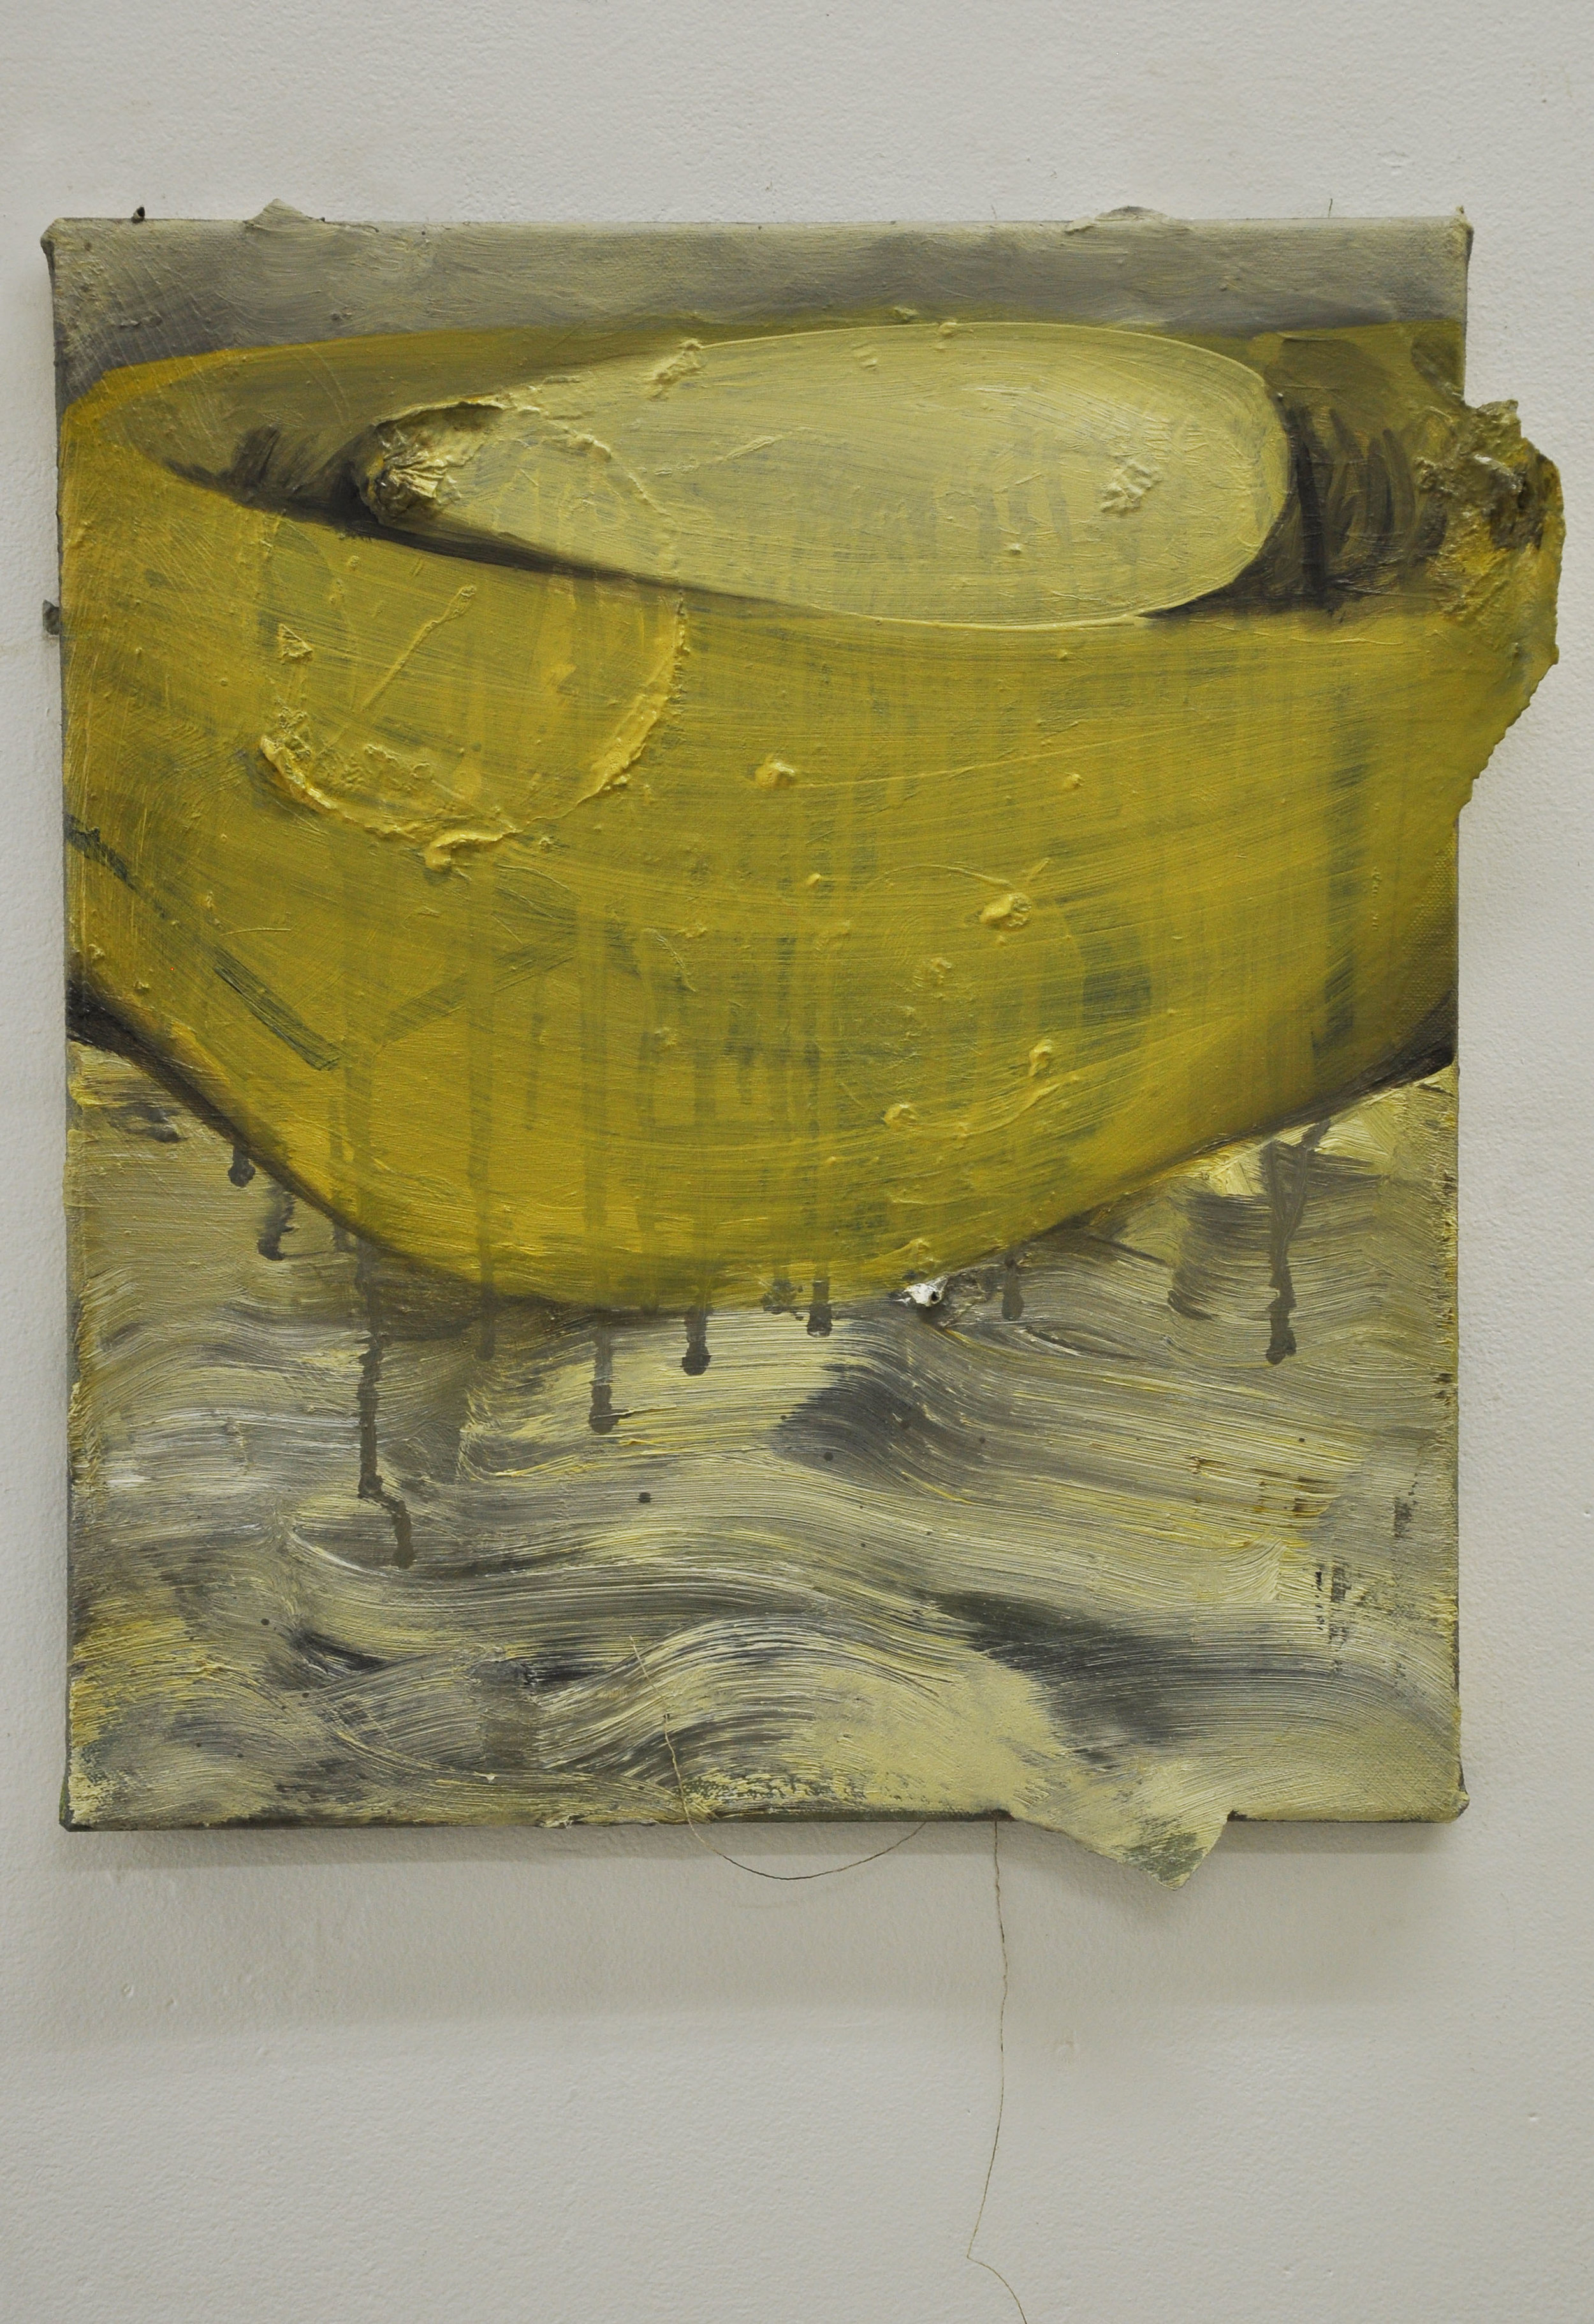 Waist, 2010, Oil and paper on canvas, 40 x 35 cm